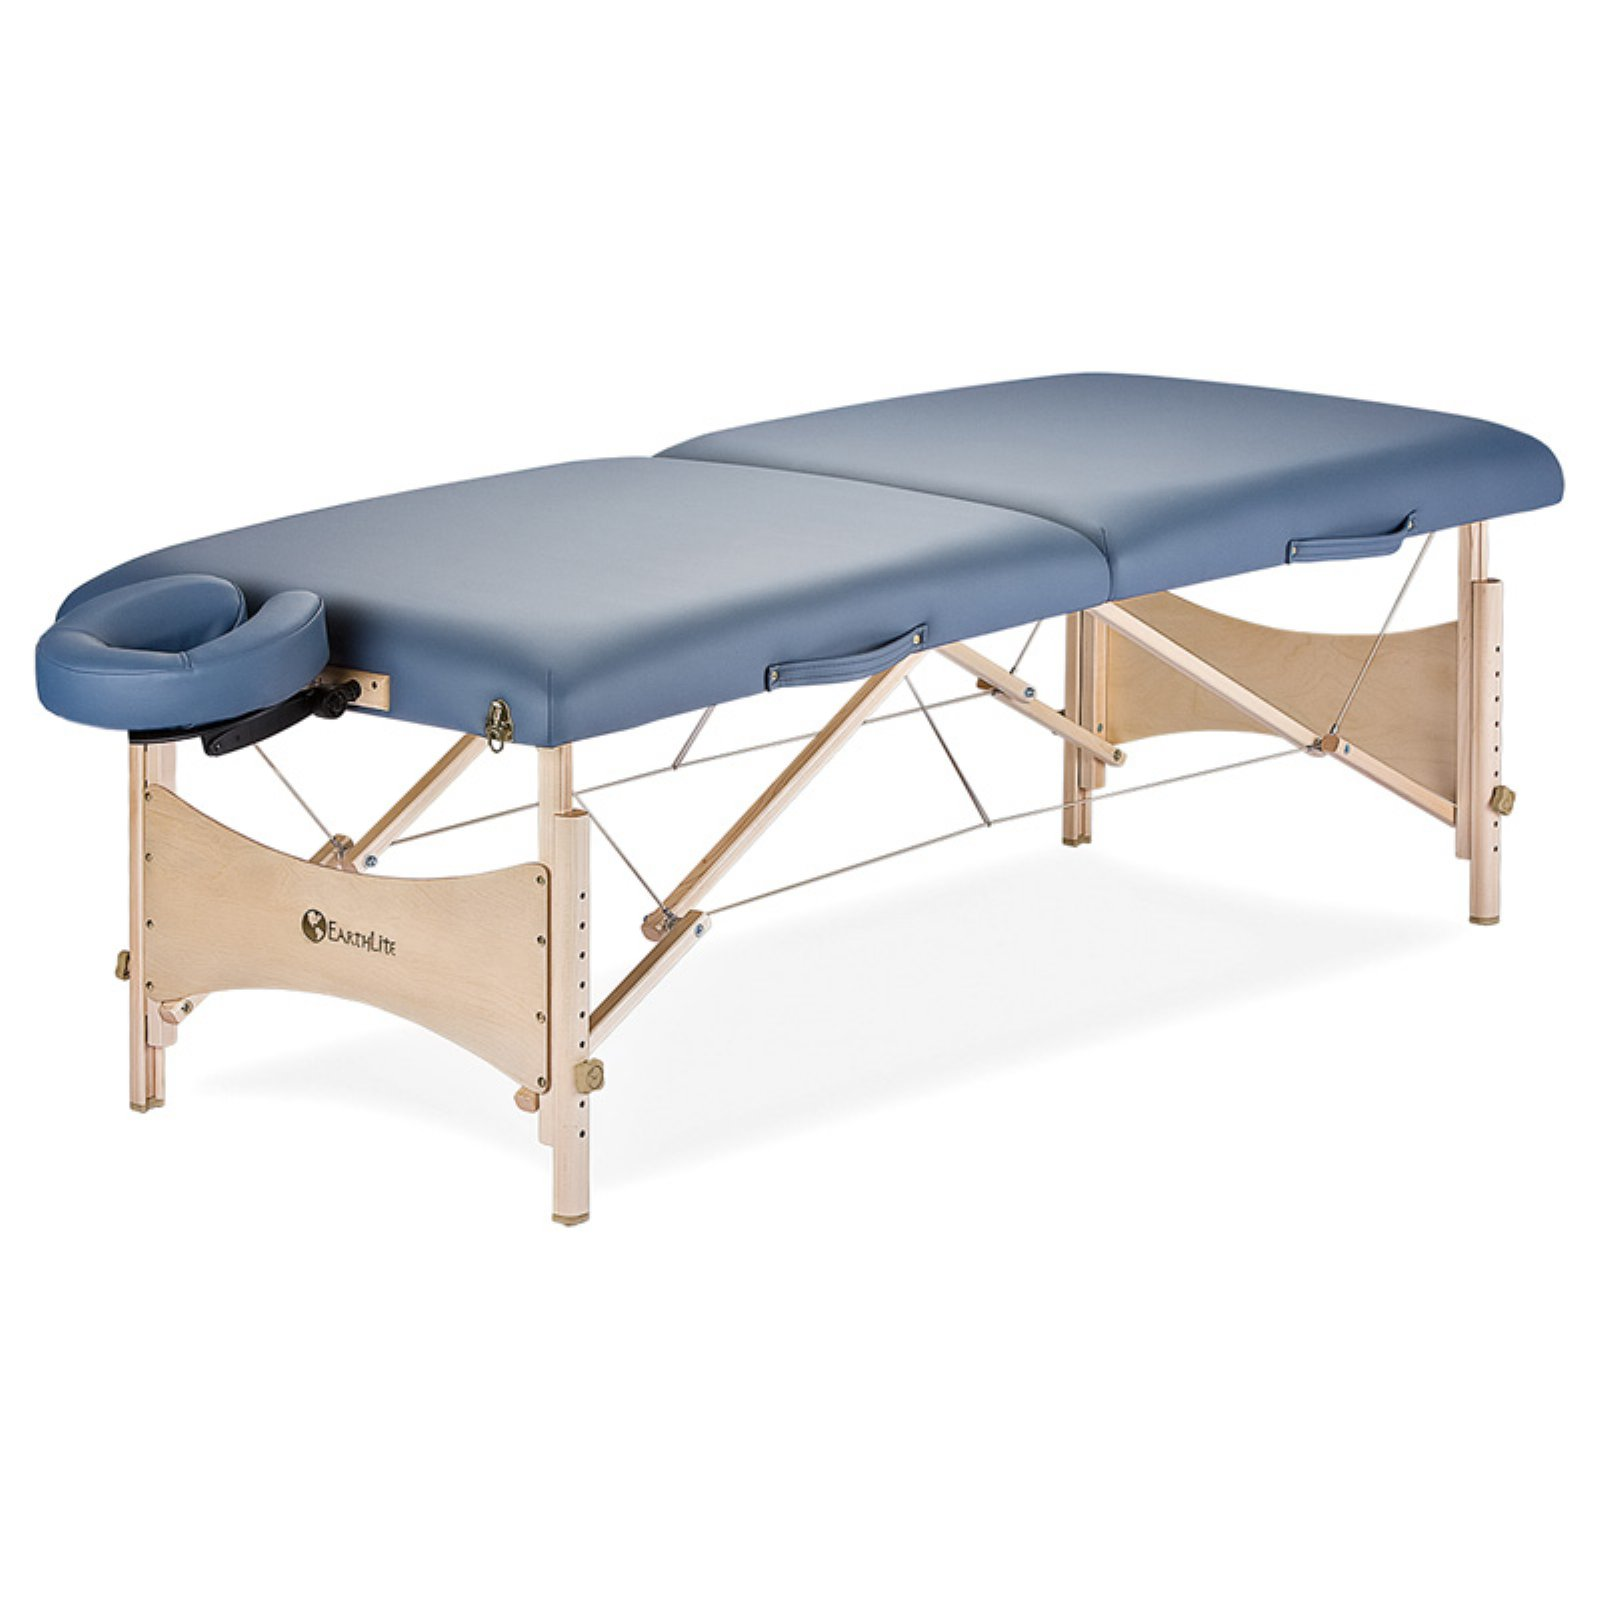 earthlite harmony portable massage table package